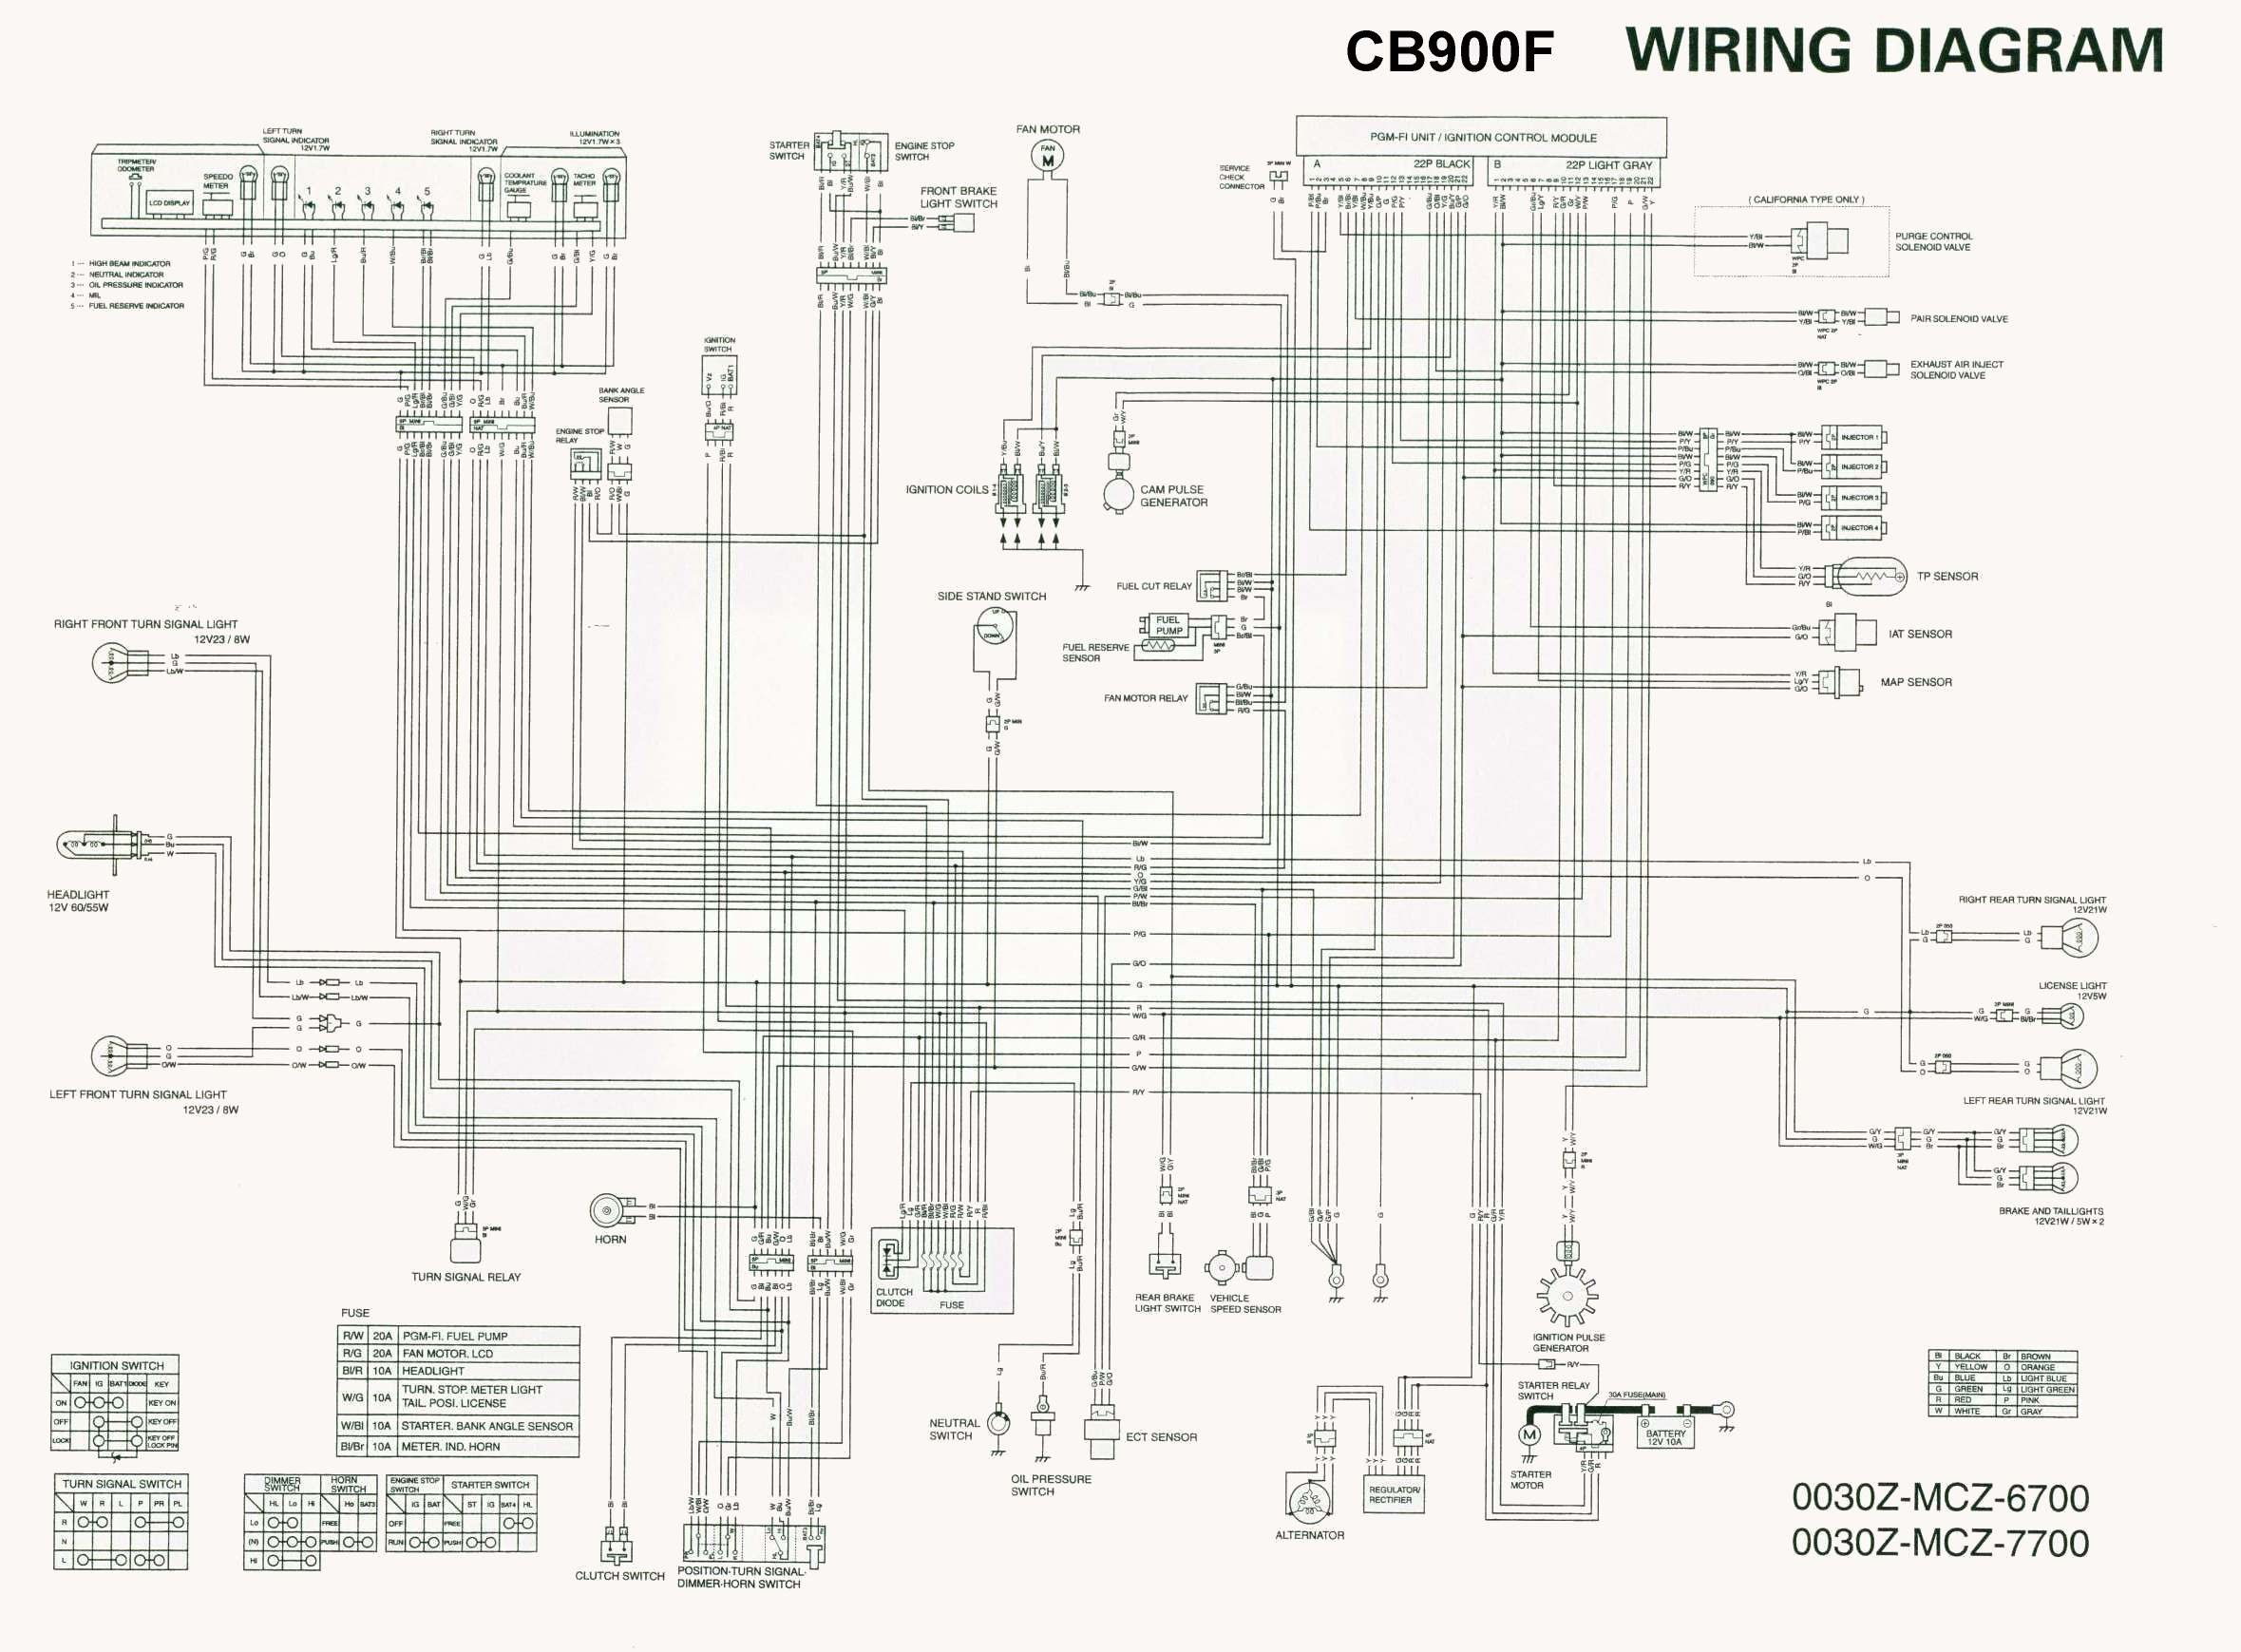 Ca77 Wiring Diagram For You All Honda 1989 Data Diagrams Electrical Forum U2022 Rh Jimmellon Co Uk Dream